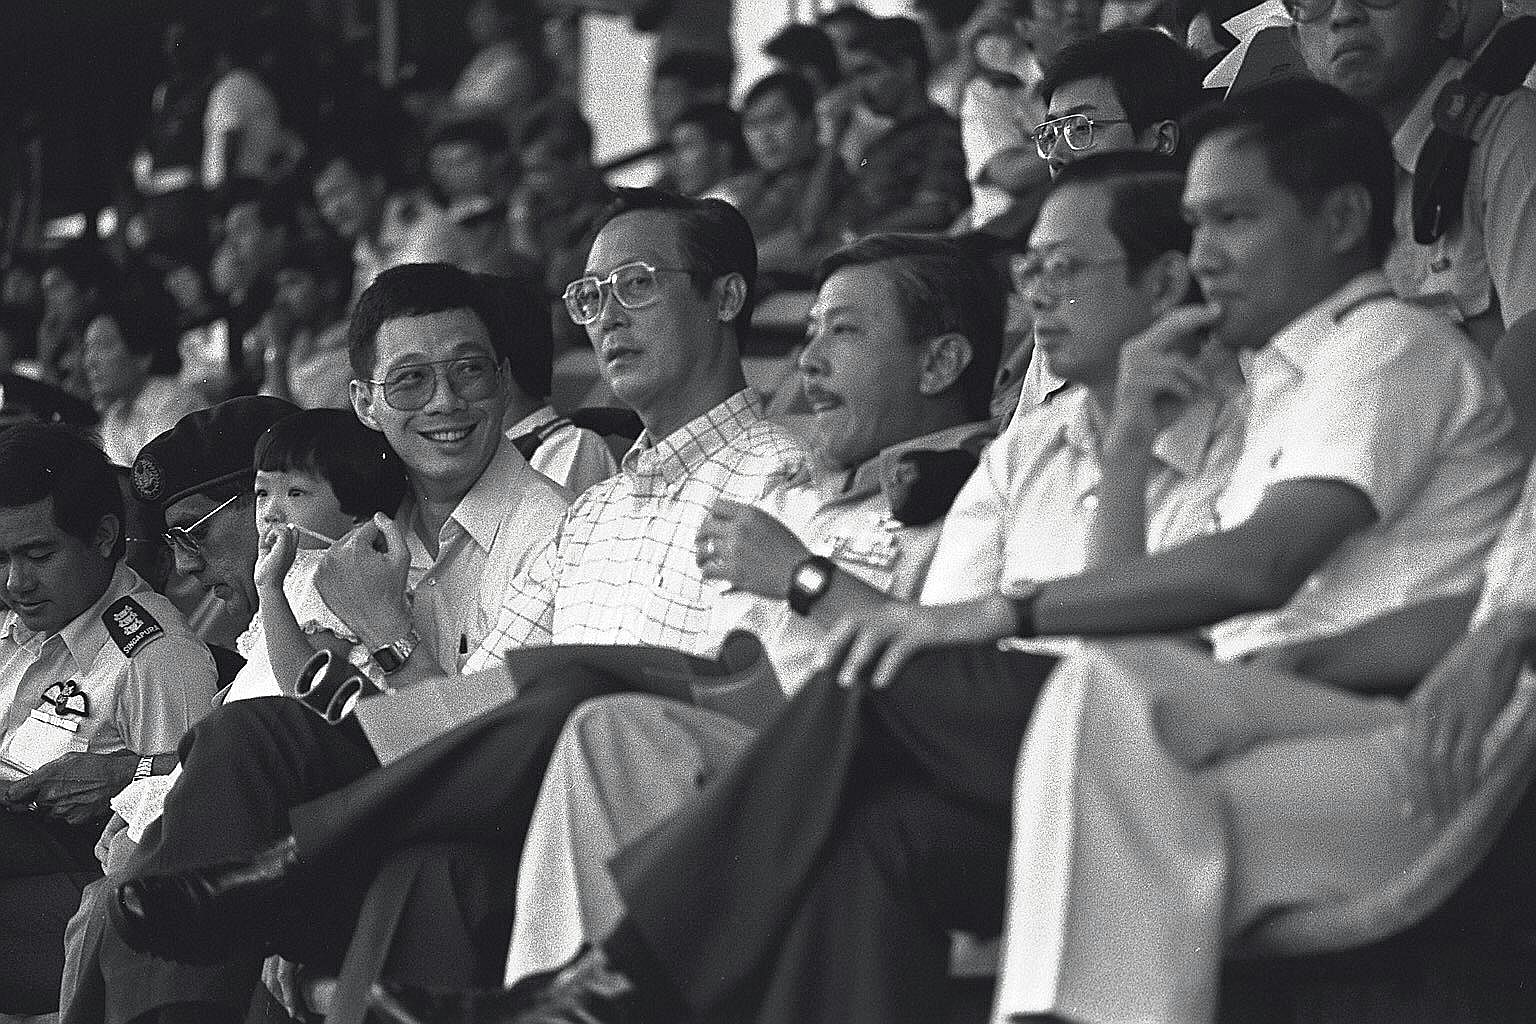 Mr Lee, then Minister of State, with his daughter Xiuqi, First DPM Goh Chok Tong and SAF Chief Winston Choo at the NDP 1985 rehearsal.